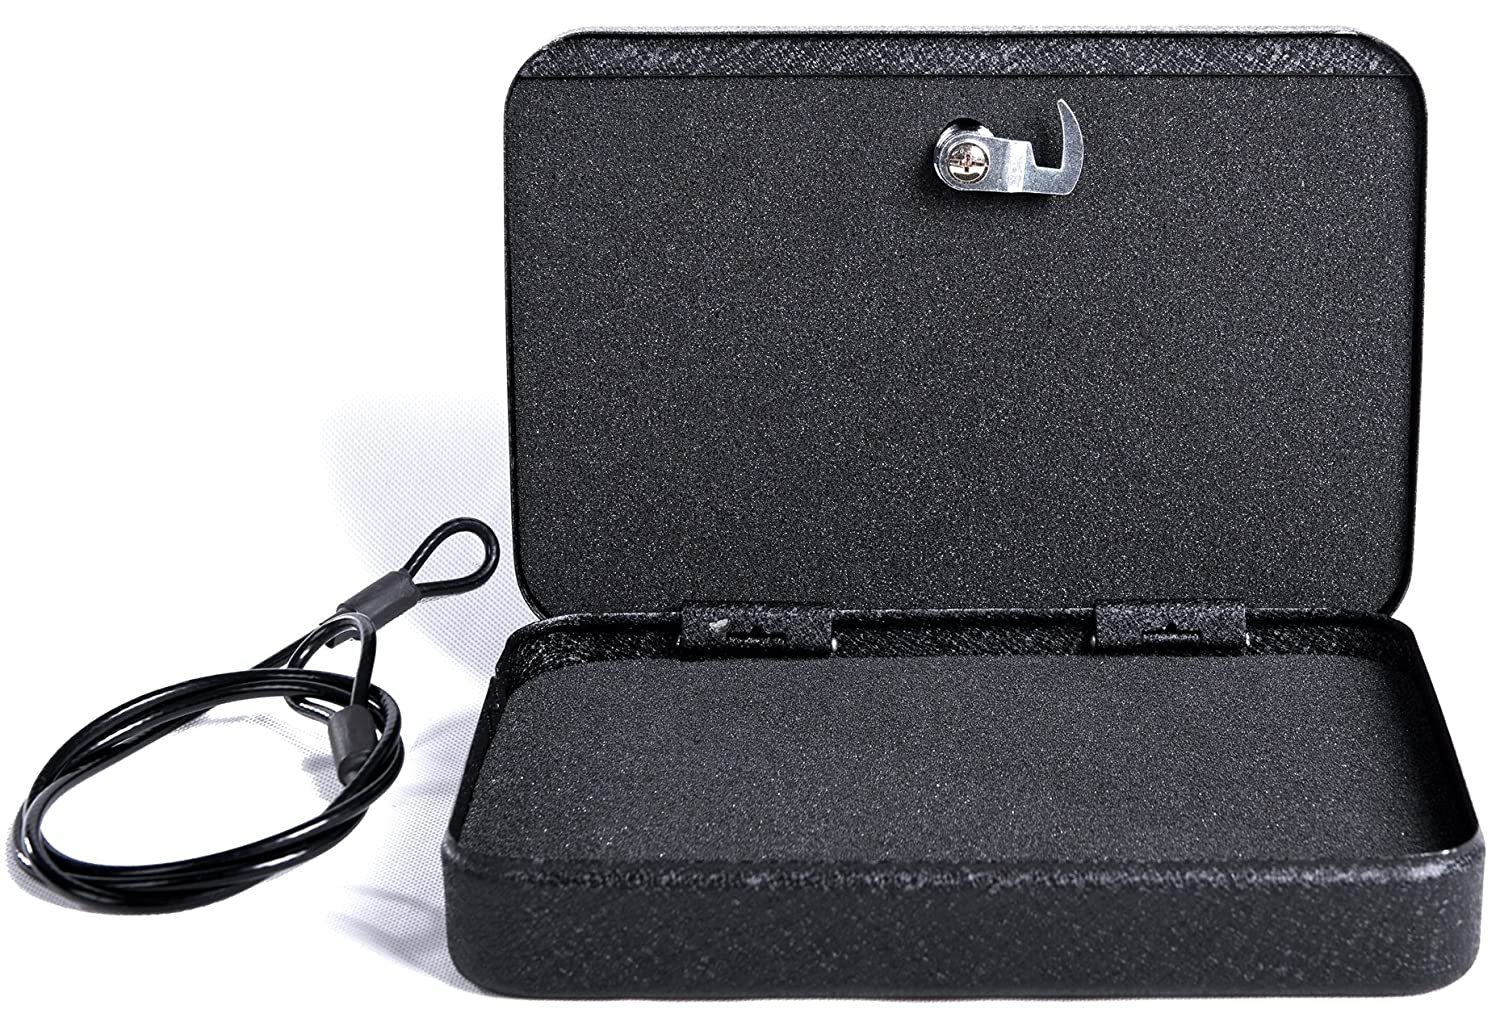 Jssmst Lockable Gun Box Pistol Case with Security Cable for Car Safe, Lock Box